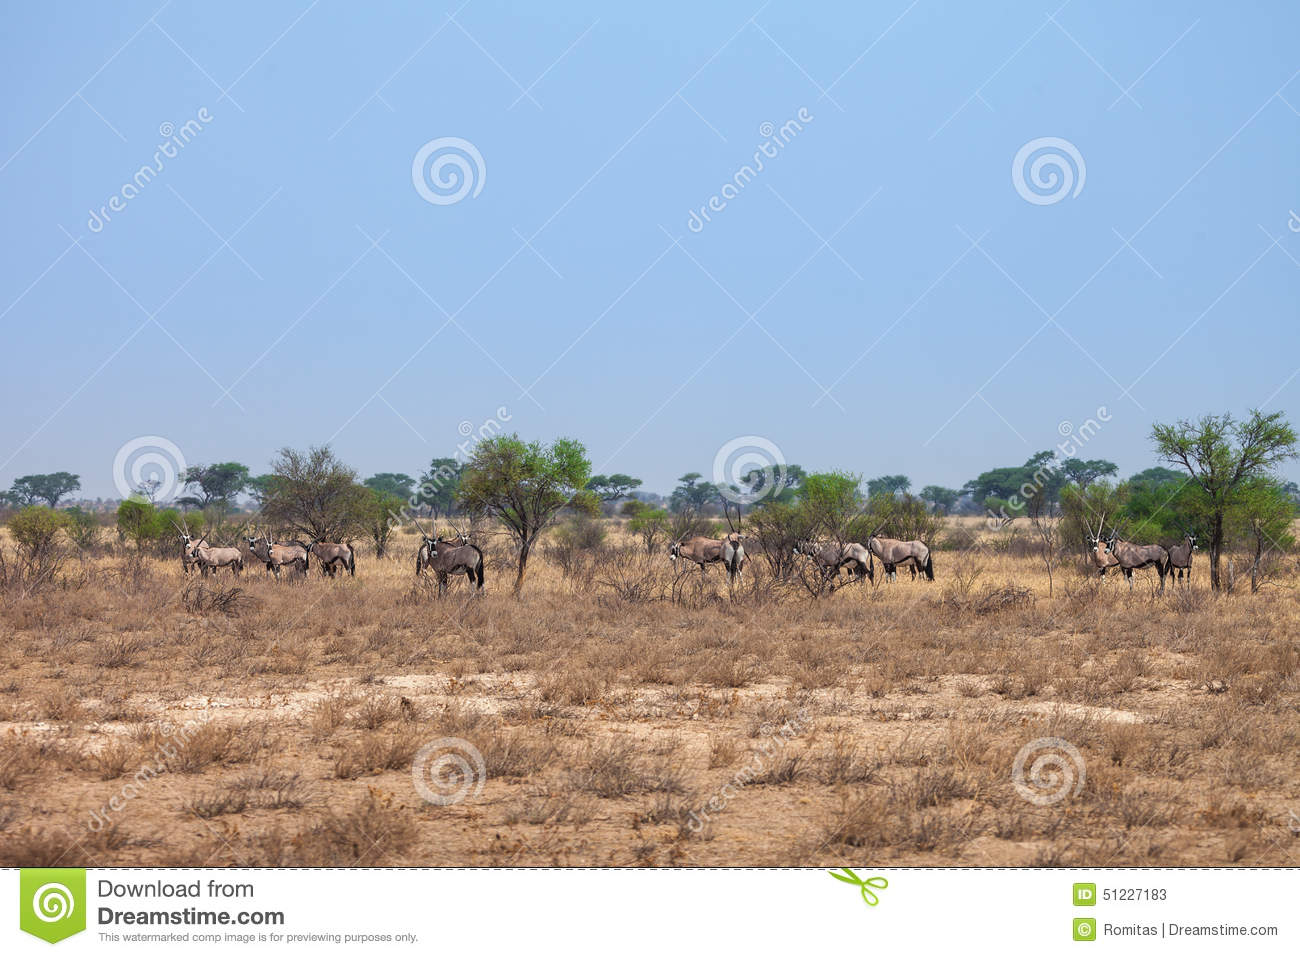 Natural Resources In The Kalahari Desert